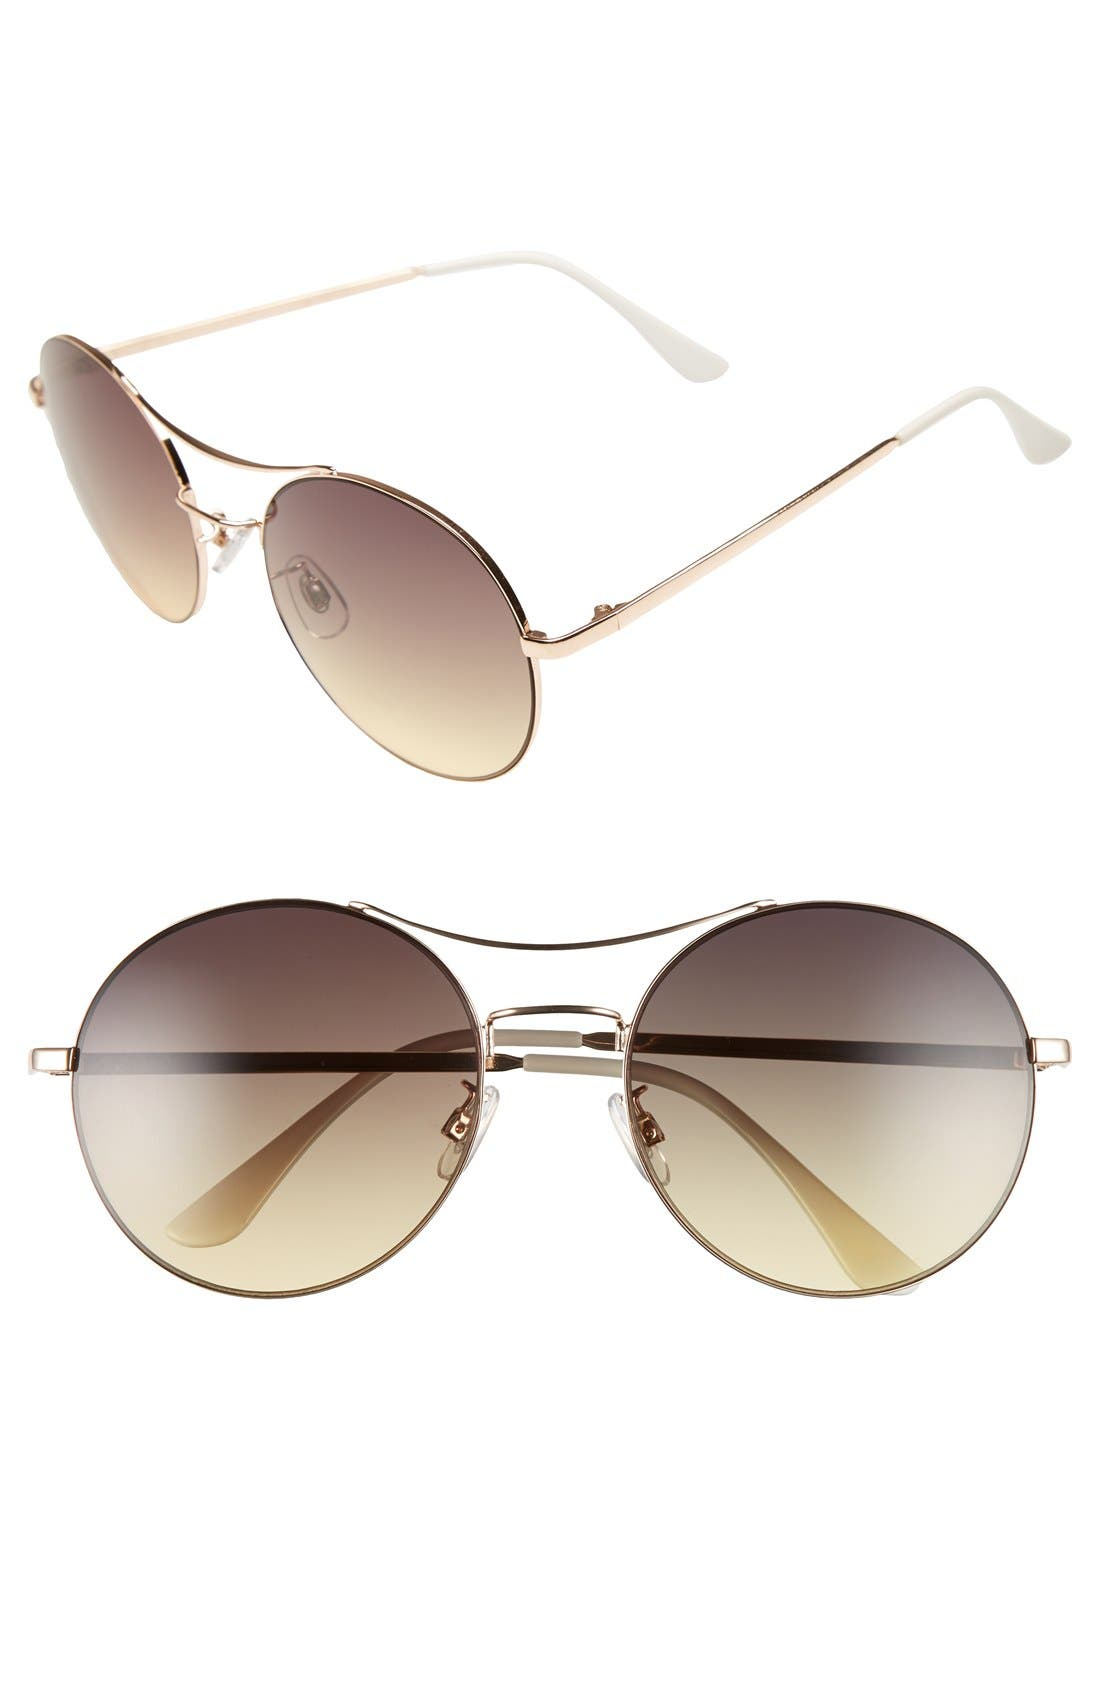 Alternate Image 1 Selected - BP. 58mm Oversize Round Sunglasses